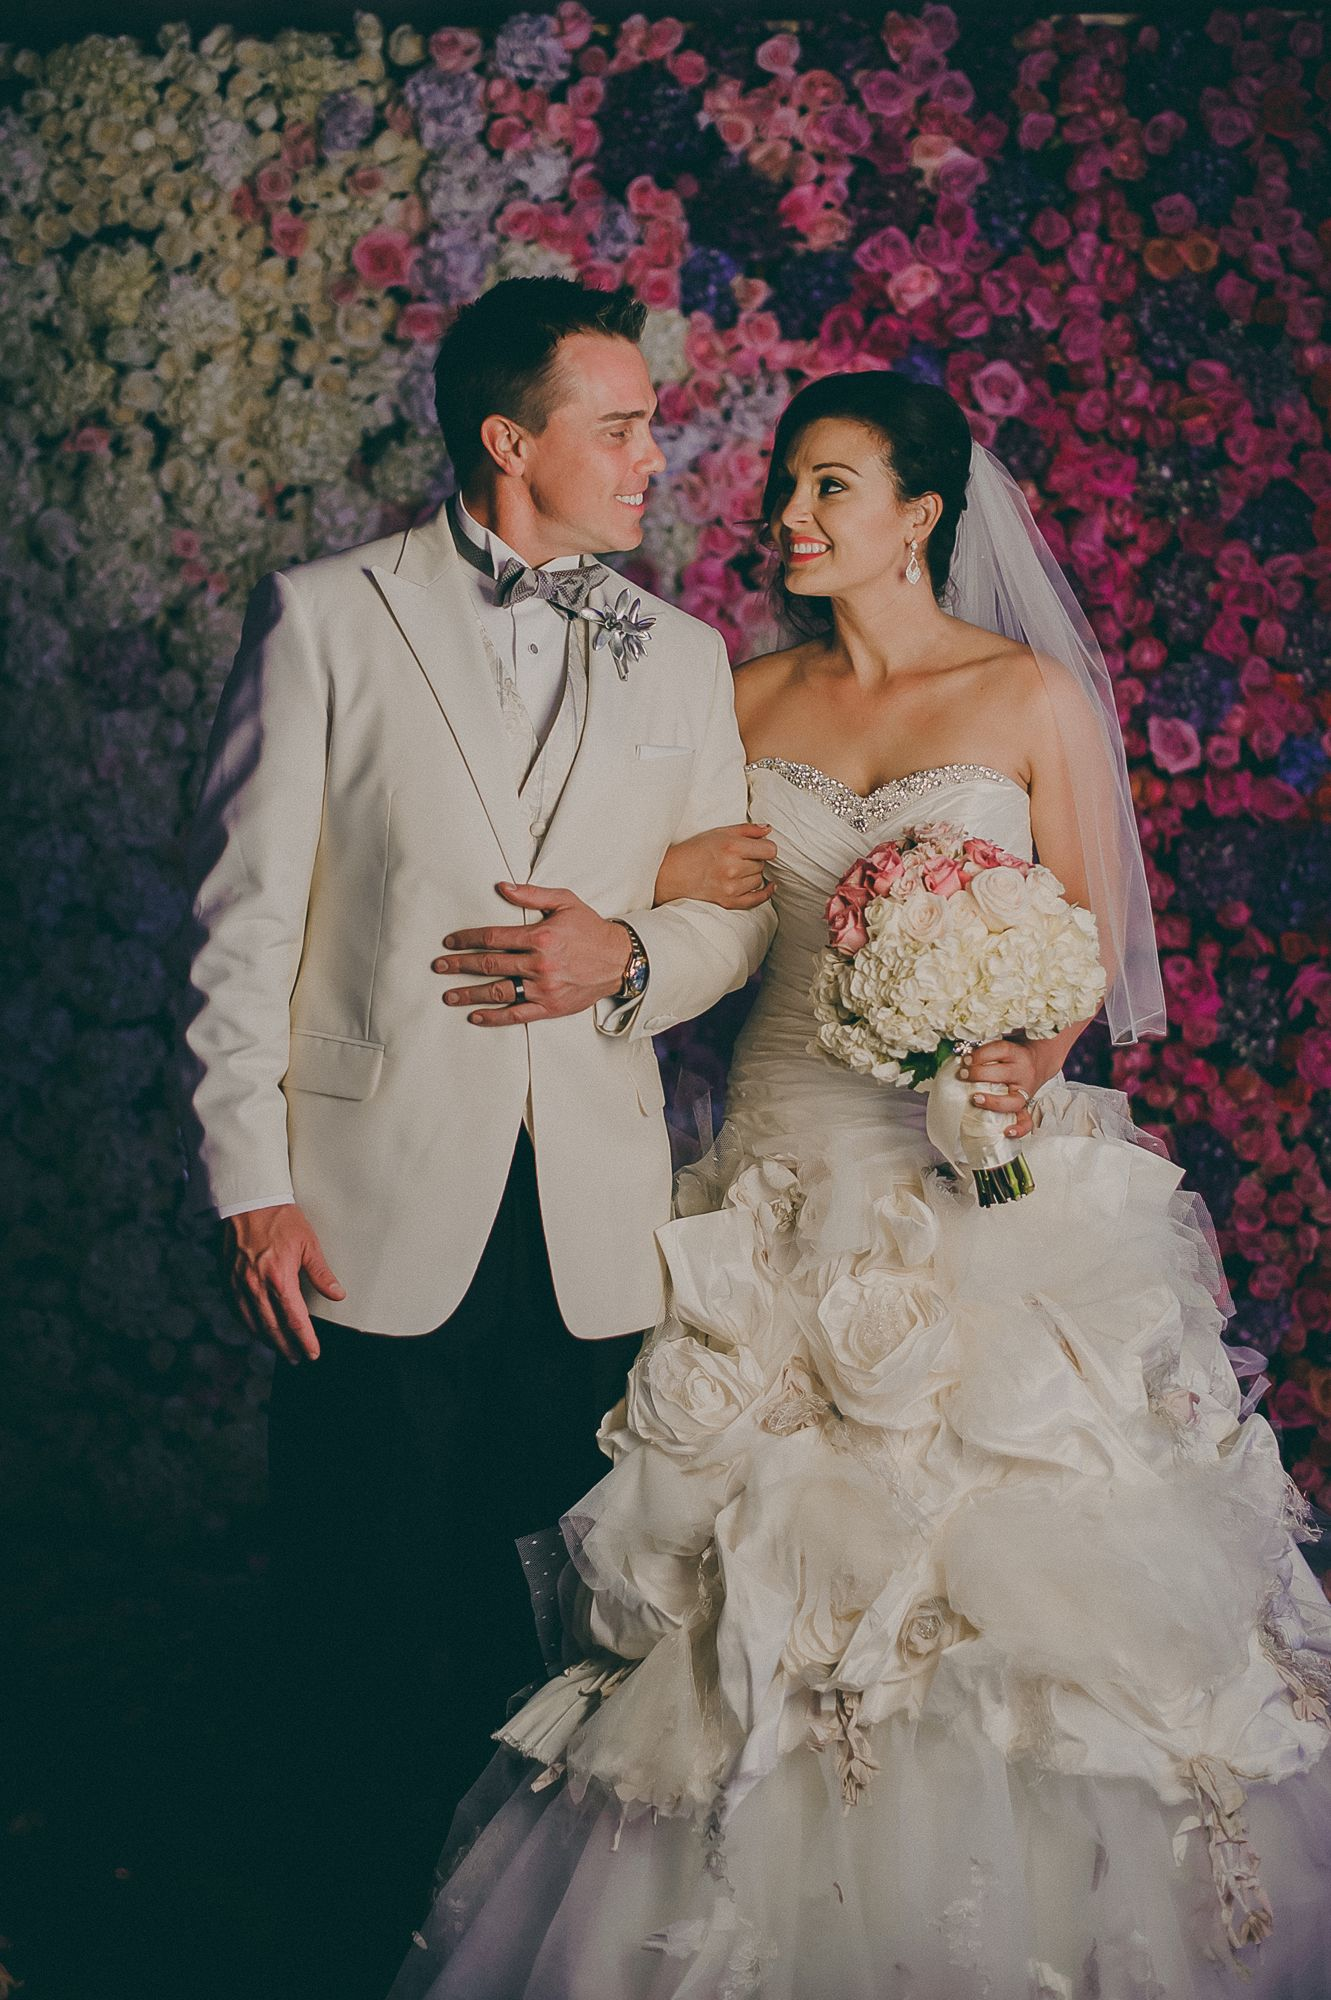 A Rustic Chic Wedding at the EPIC Railyard Event Center in El Paso ...